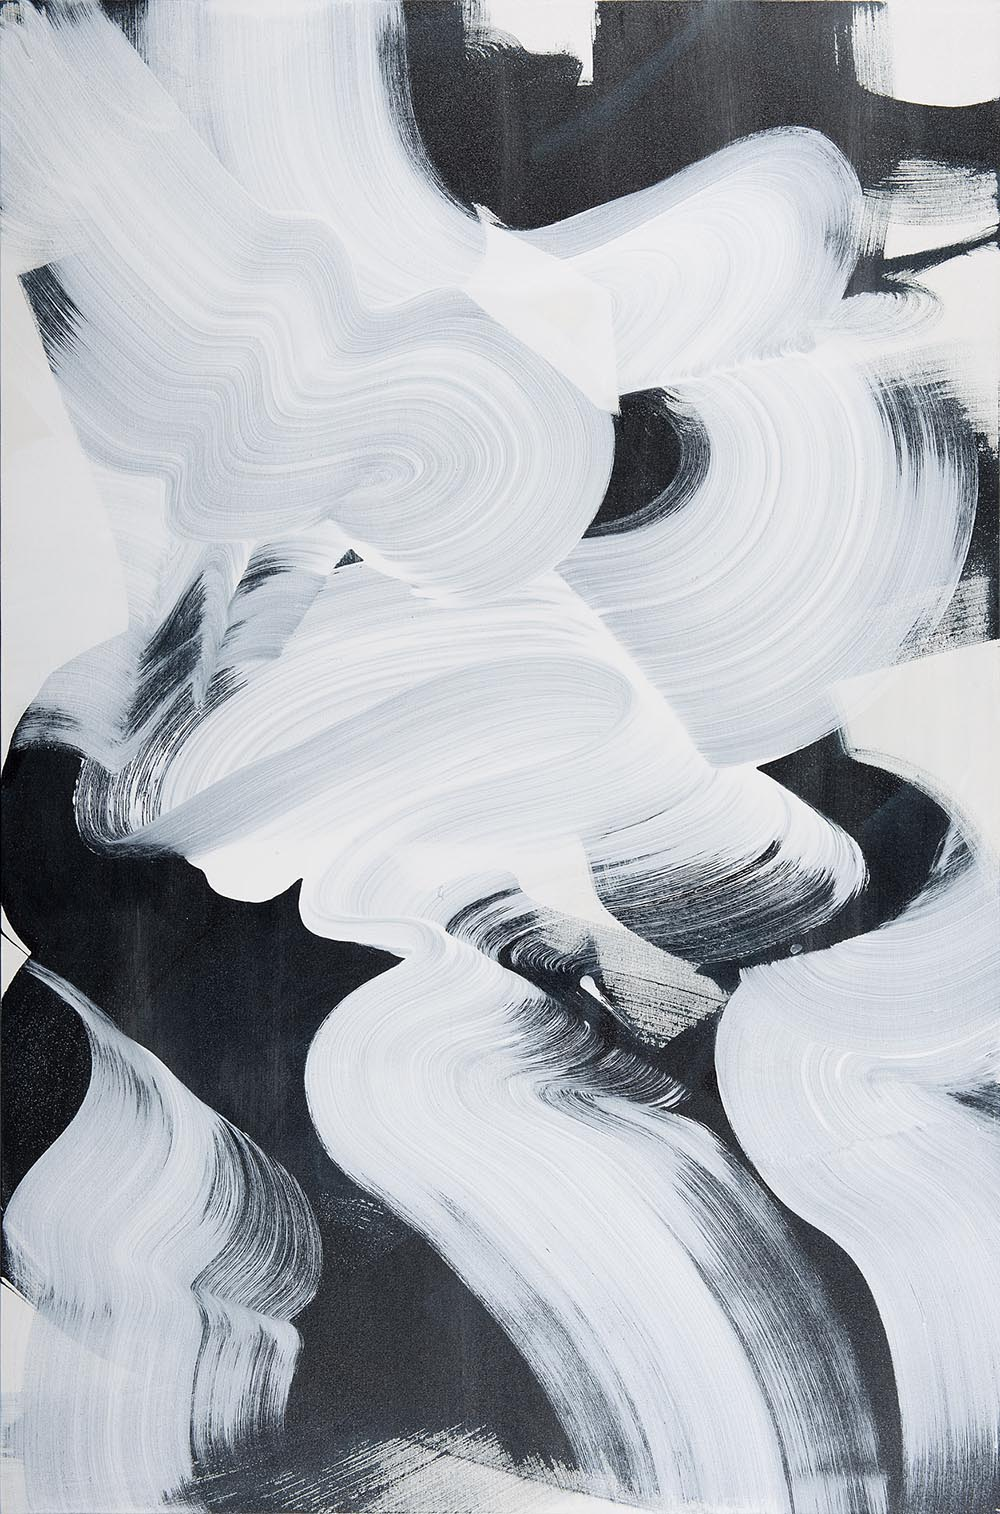 Andrea McCuaig Prelude to zen I 2014 Acrylic on canvas 150 x 100cm